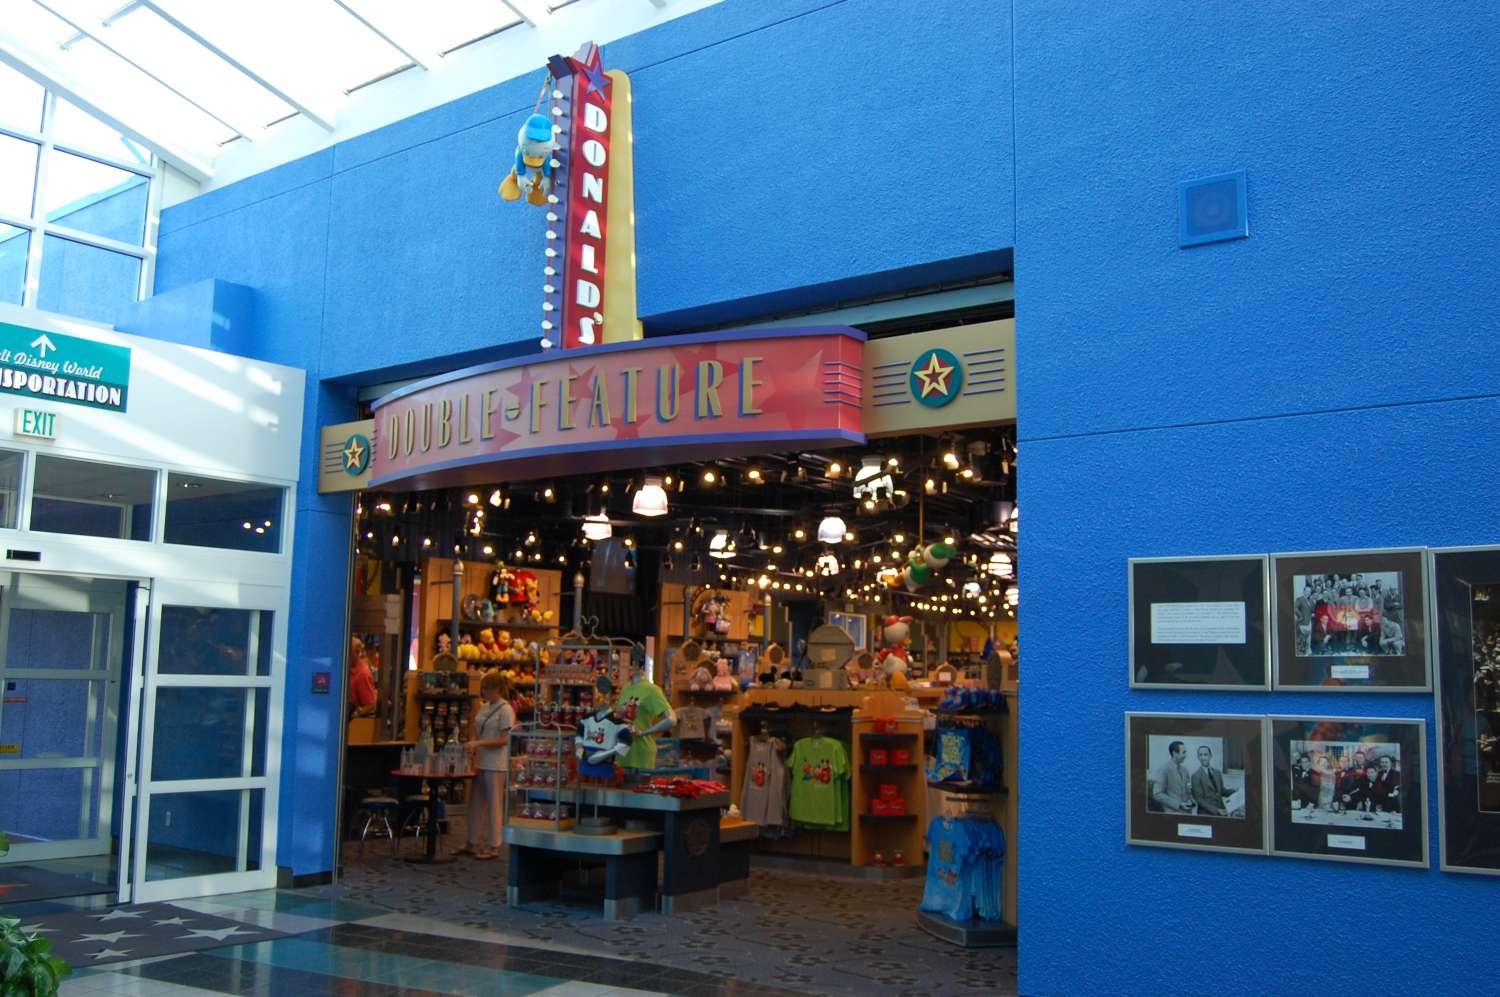 Donald's Double Feature at Disney's All Star Movies resort is the resort gift shop. You can also get sundries and have purchases made in the parks delivered here.